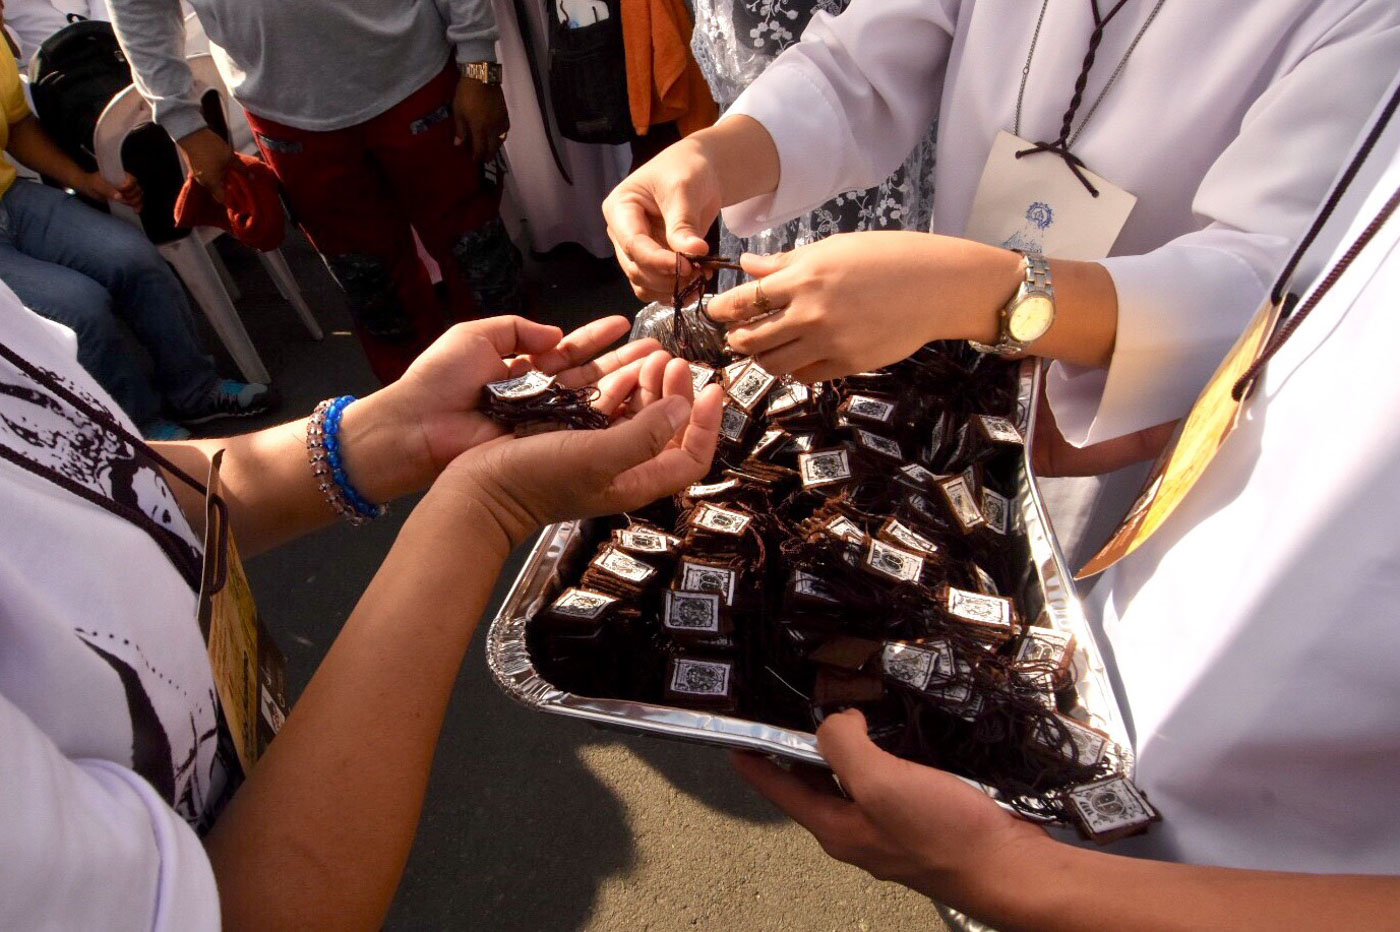 SCAPULARS DISTRIBUTED. Volunteers distribute scapulars during the Mass at the Quirino Grandstand on May 4, 2018, for the 400th anniversary of the arrival of Our Lady of Mount Carmel in the Philippines. Photo by Angie de Silva/Rappler